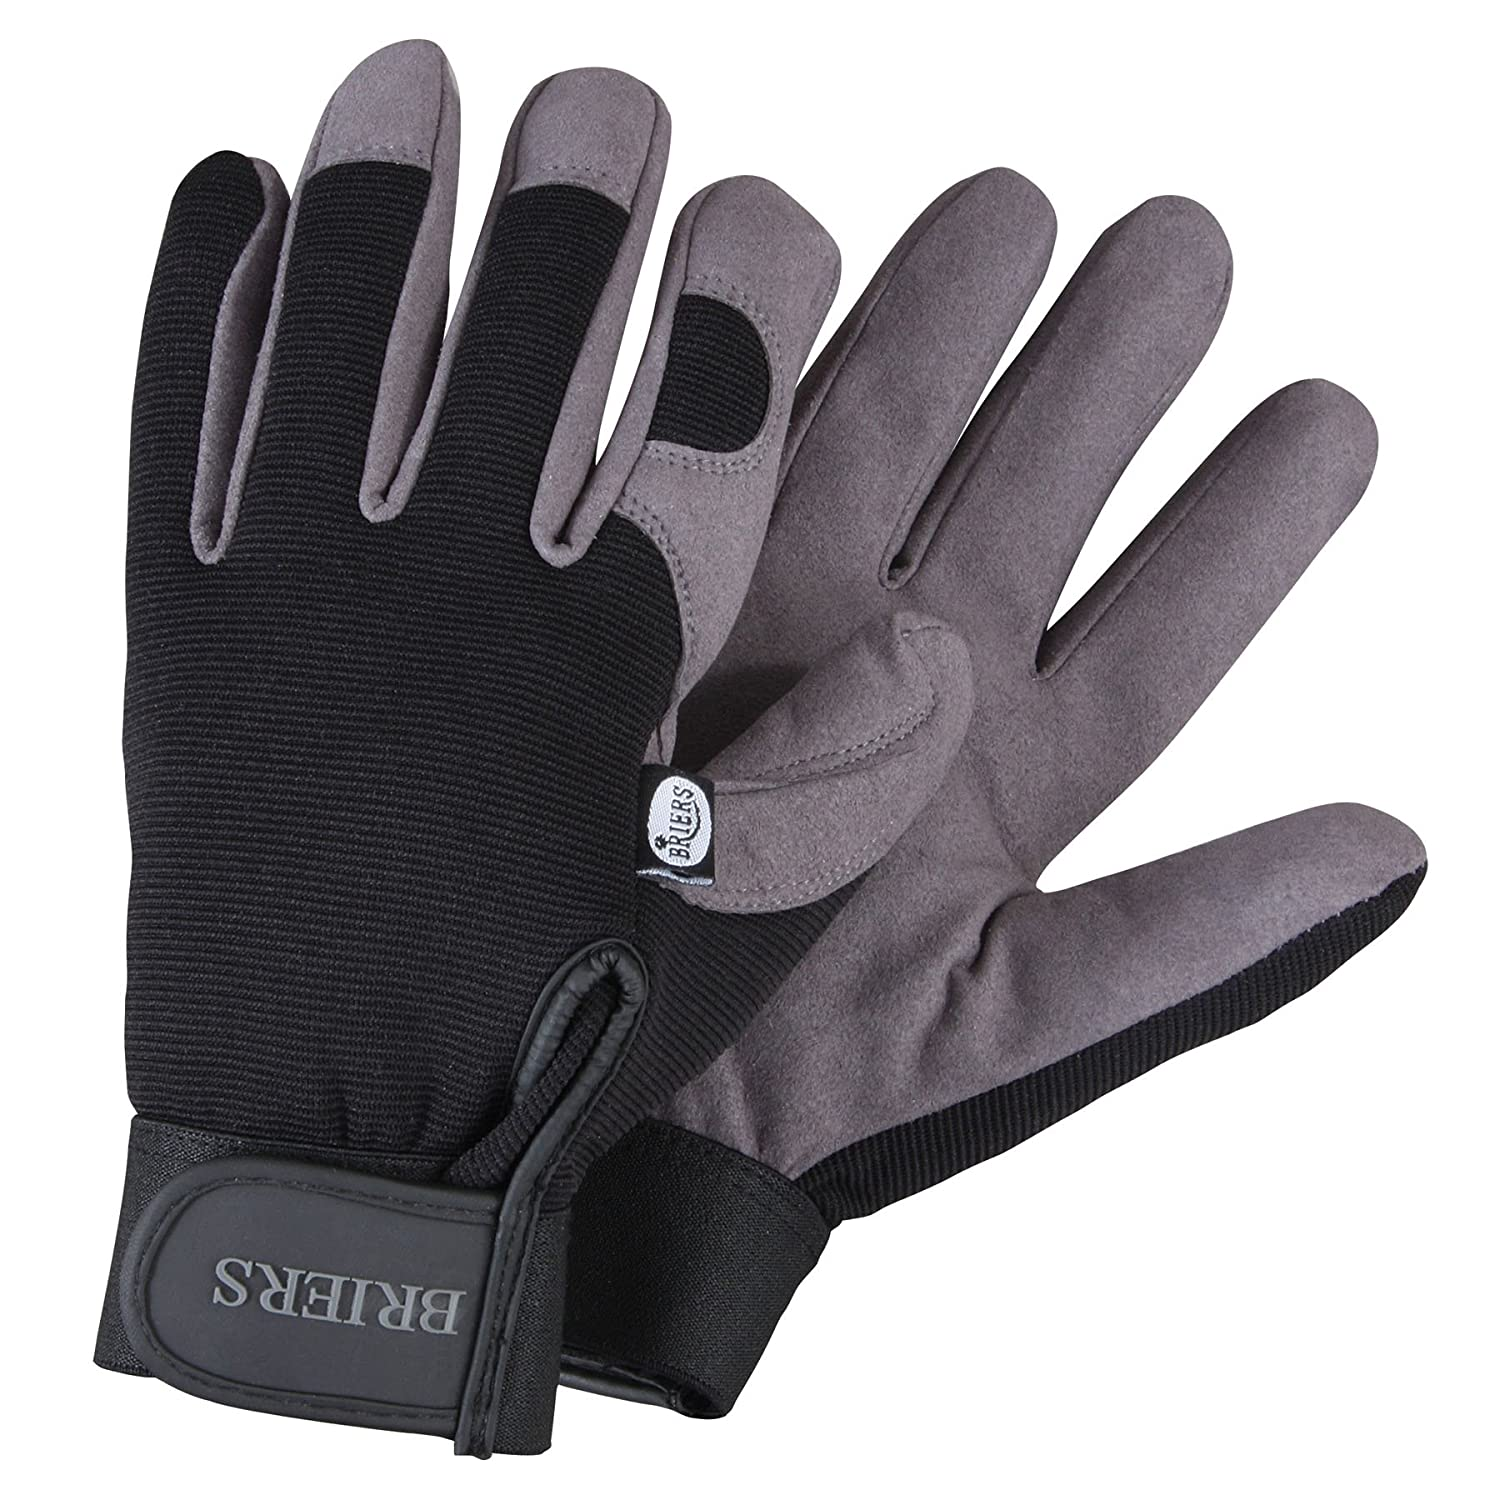 The Professional Gloves - Large Briers Ltd B0122